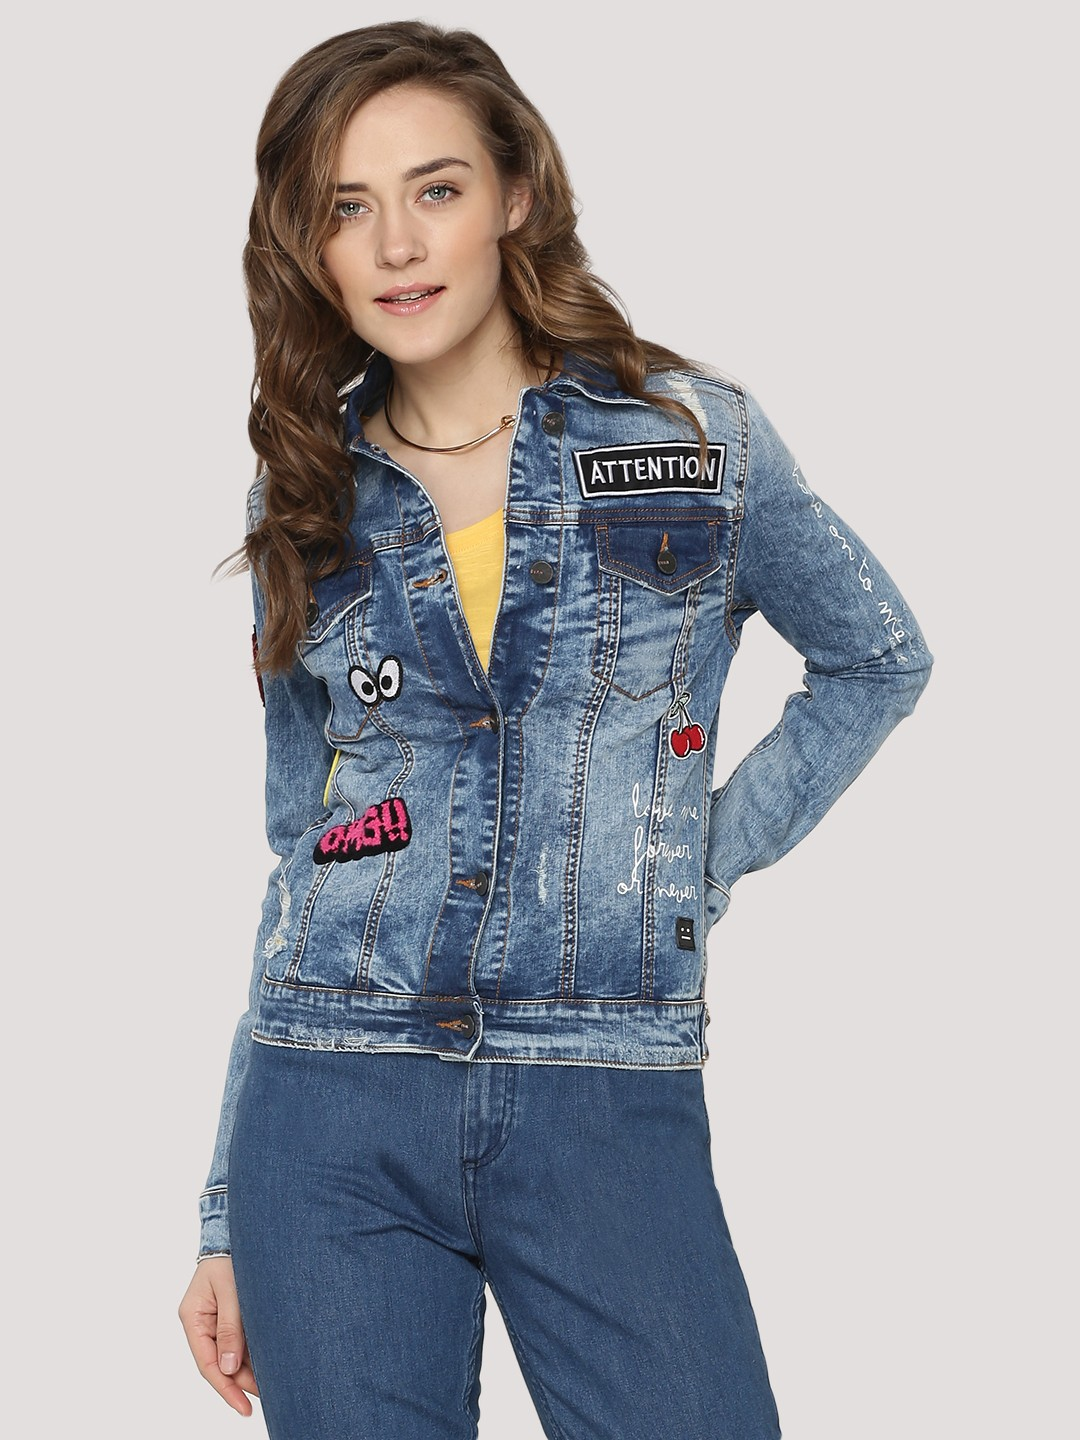 Denim jackets buy online